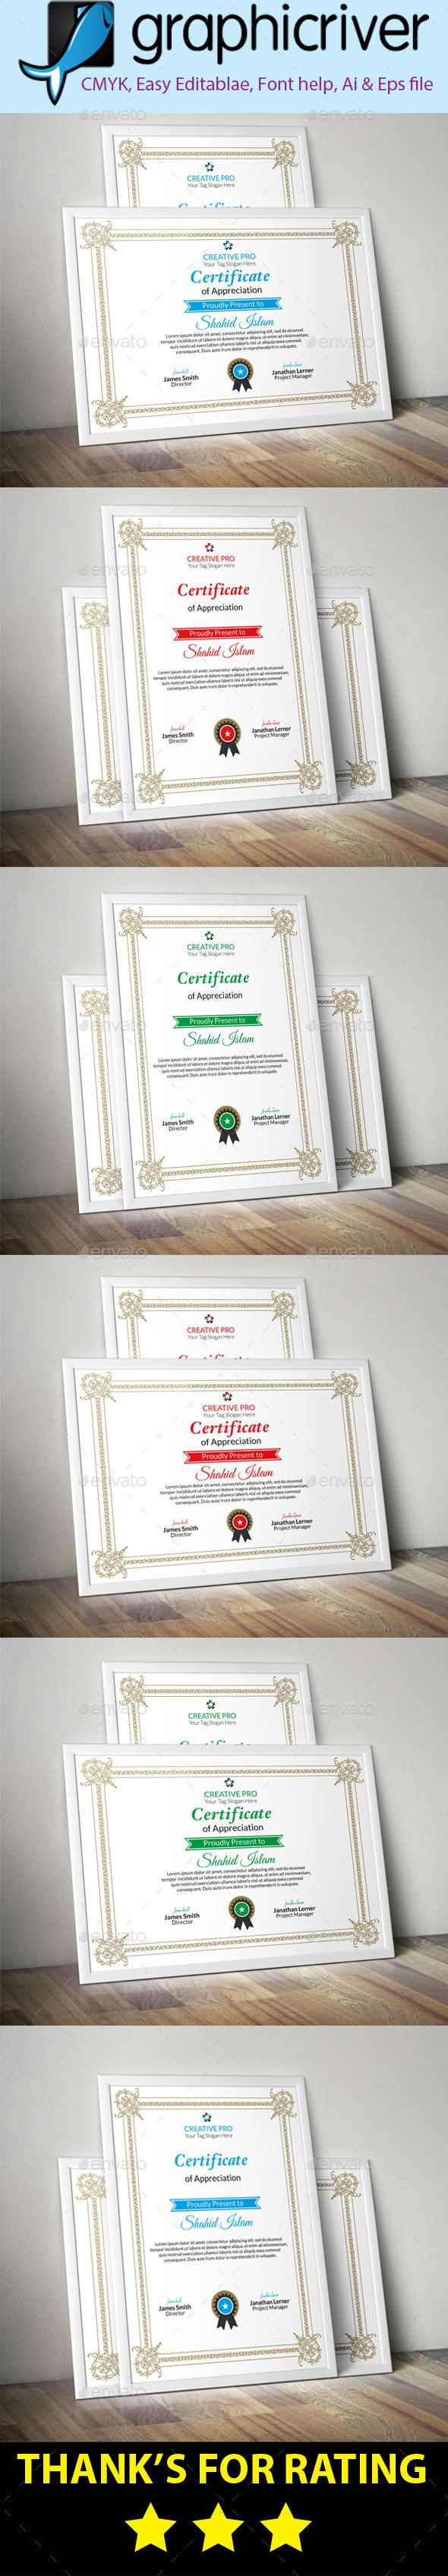 #Certificate (08) - Certificates #Stationery Download here: https://graphicriver.net/item/certificate-08/18627216?ref=alena994